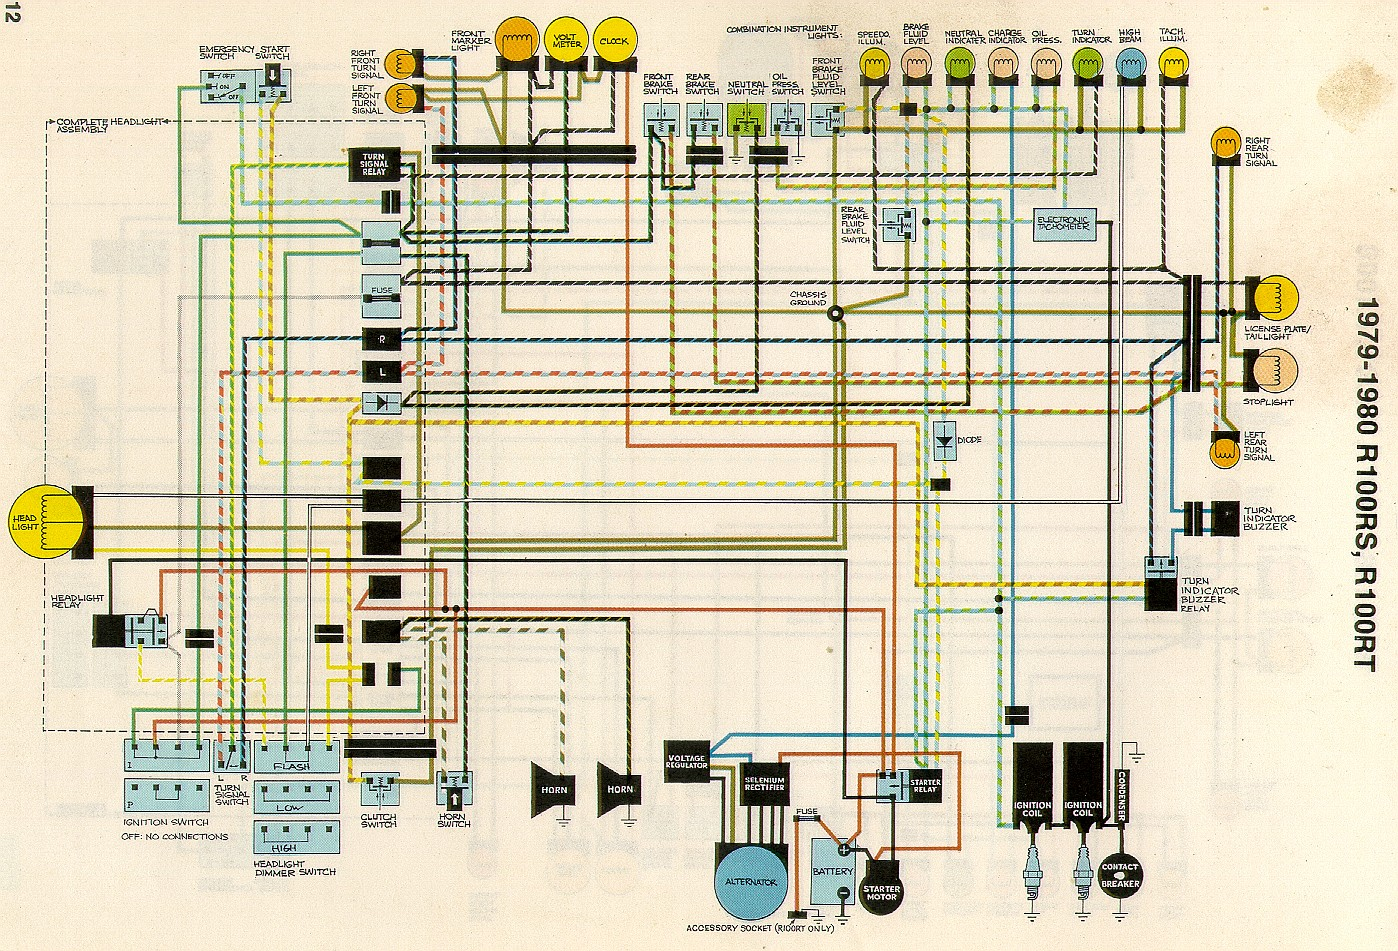 79rs 5 united articles wiring diagrams bmw r100 wiring diagram at gsmx.co